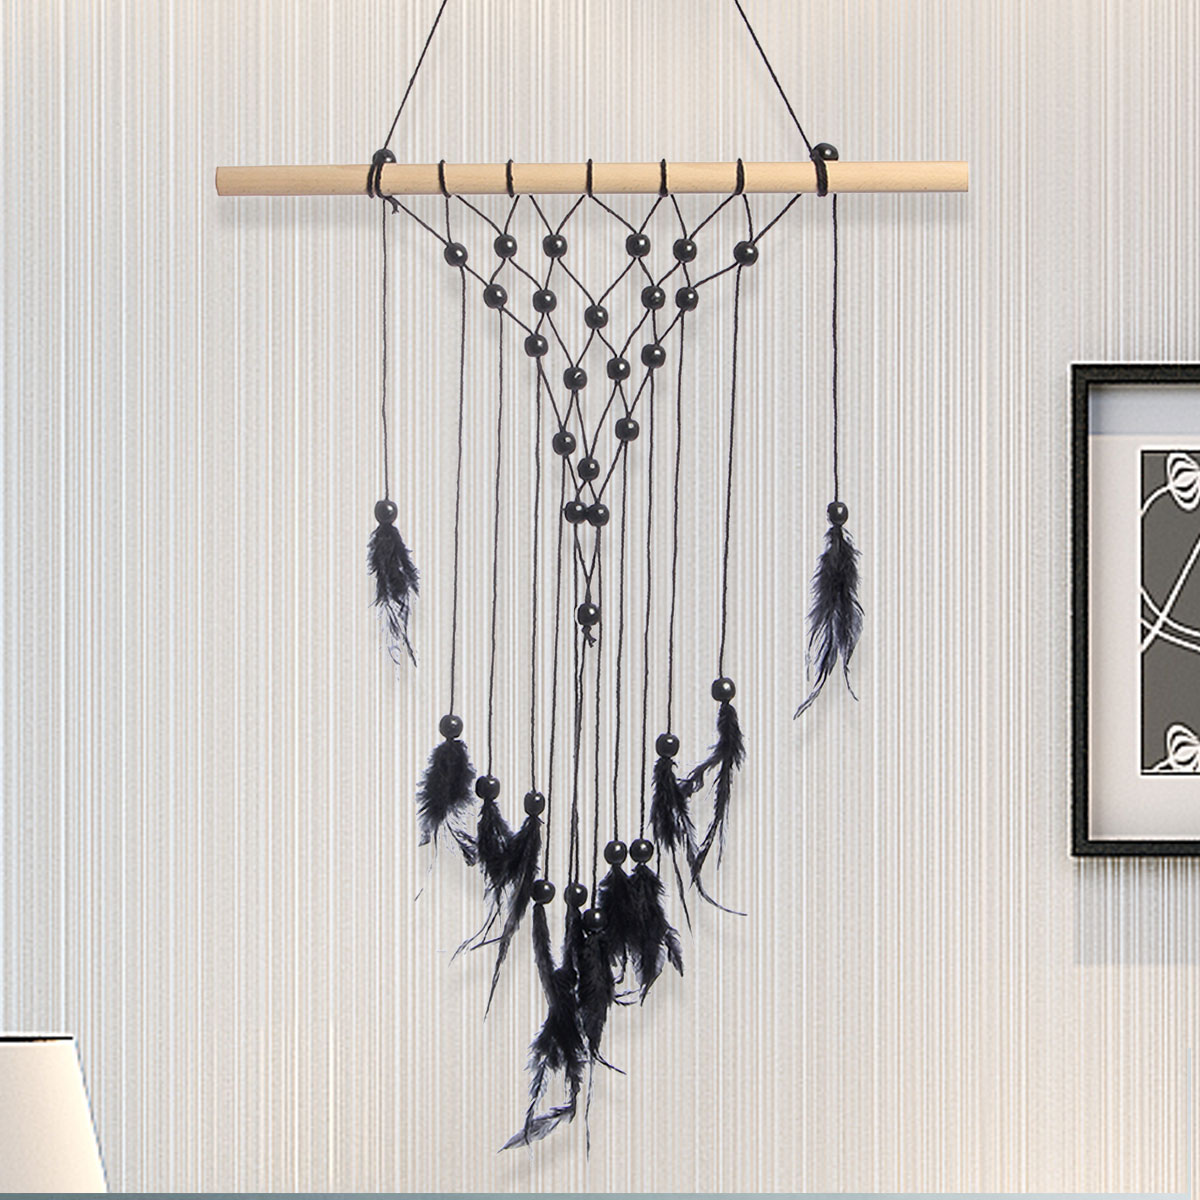 45x80cm Bohemian Macrame Woven Wall Hanging Handmade Tapestry Knitting Home Bedding Room Decor by